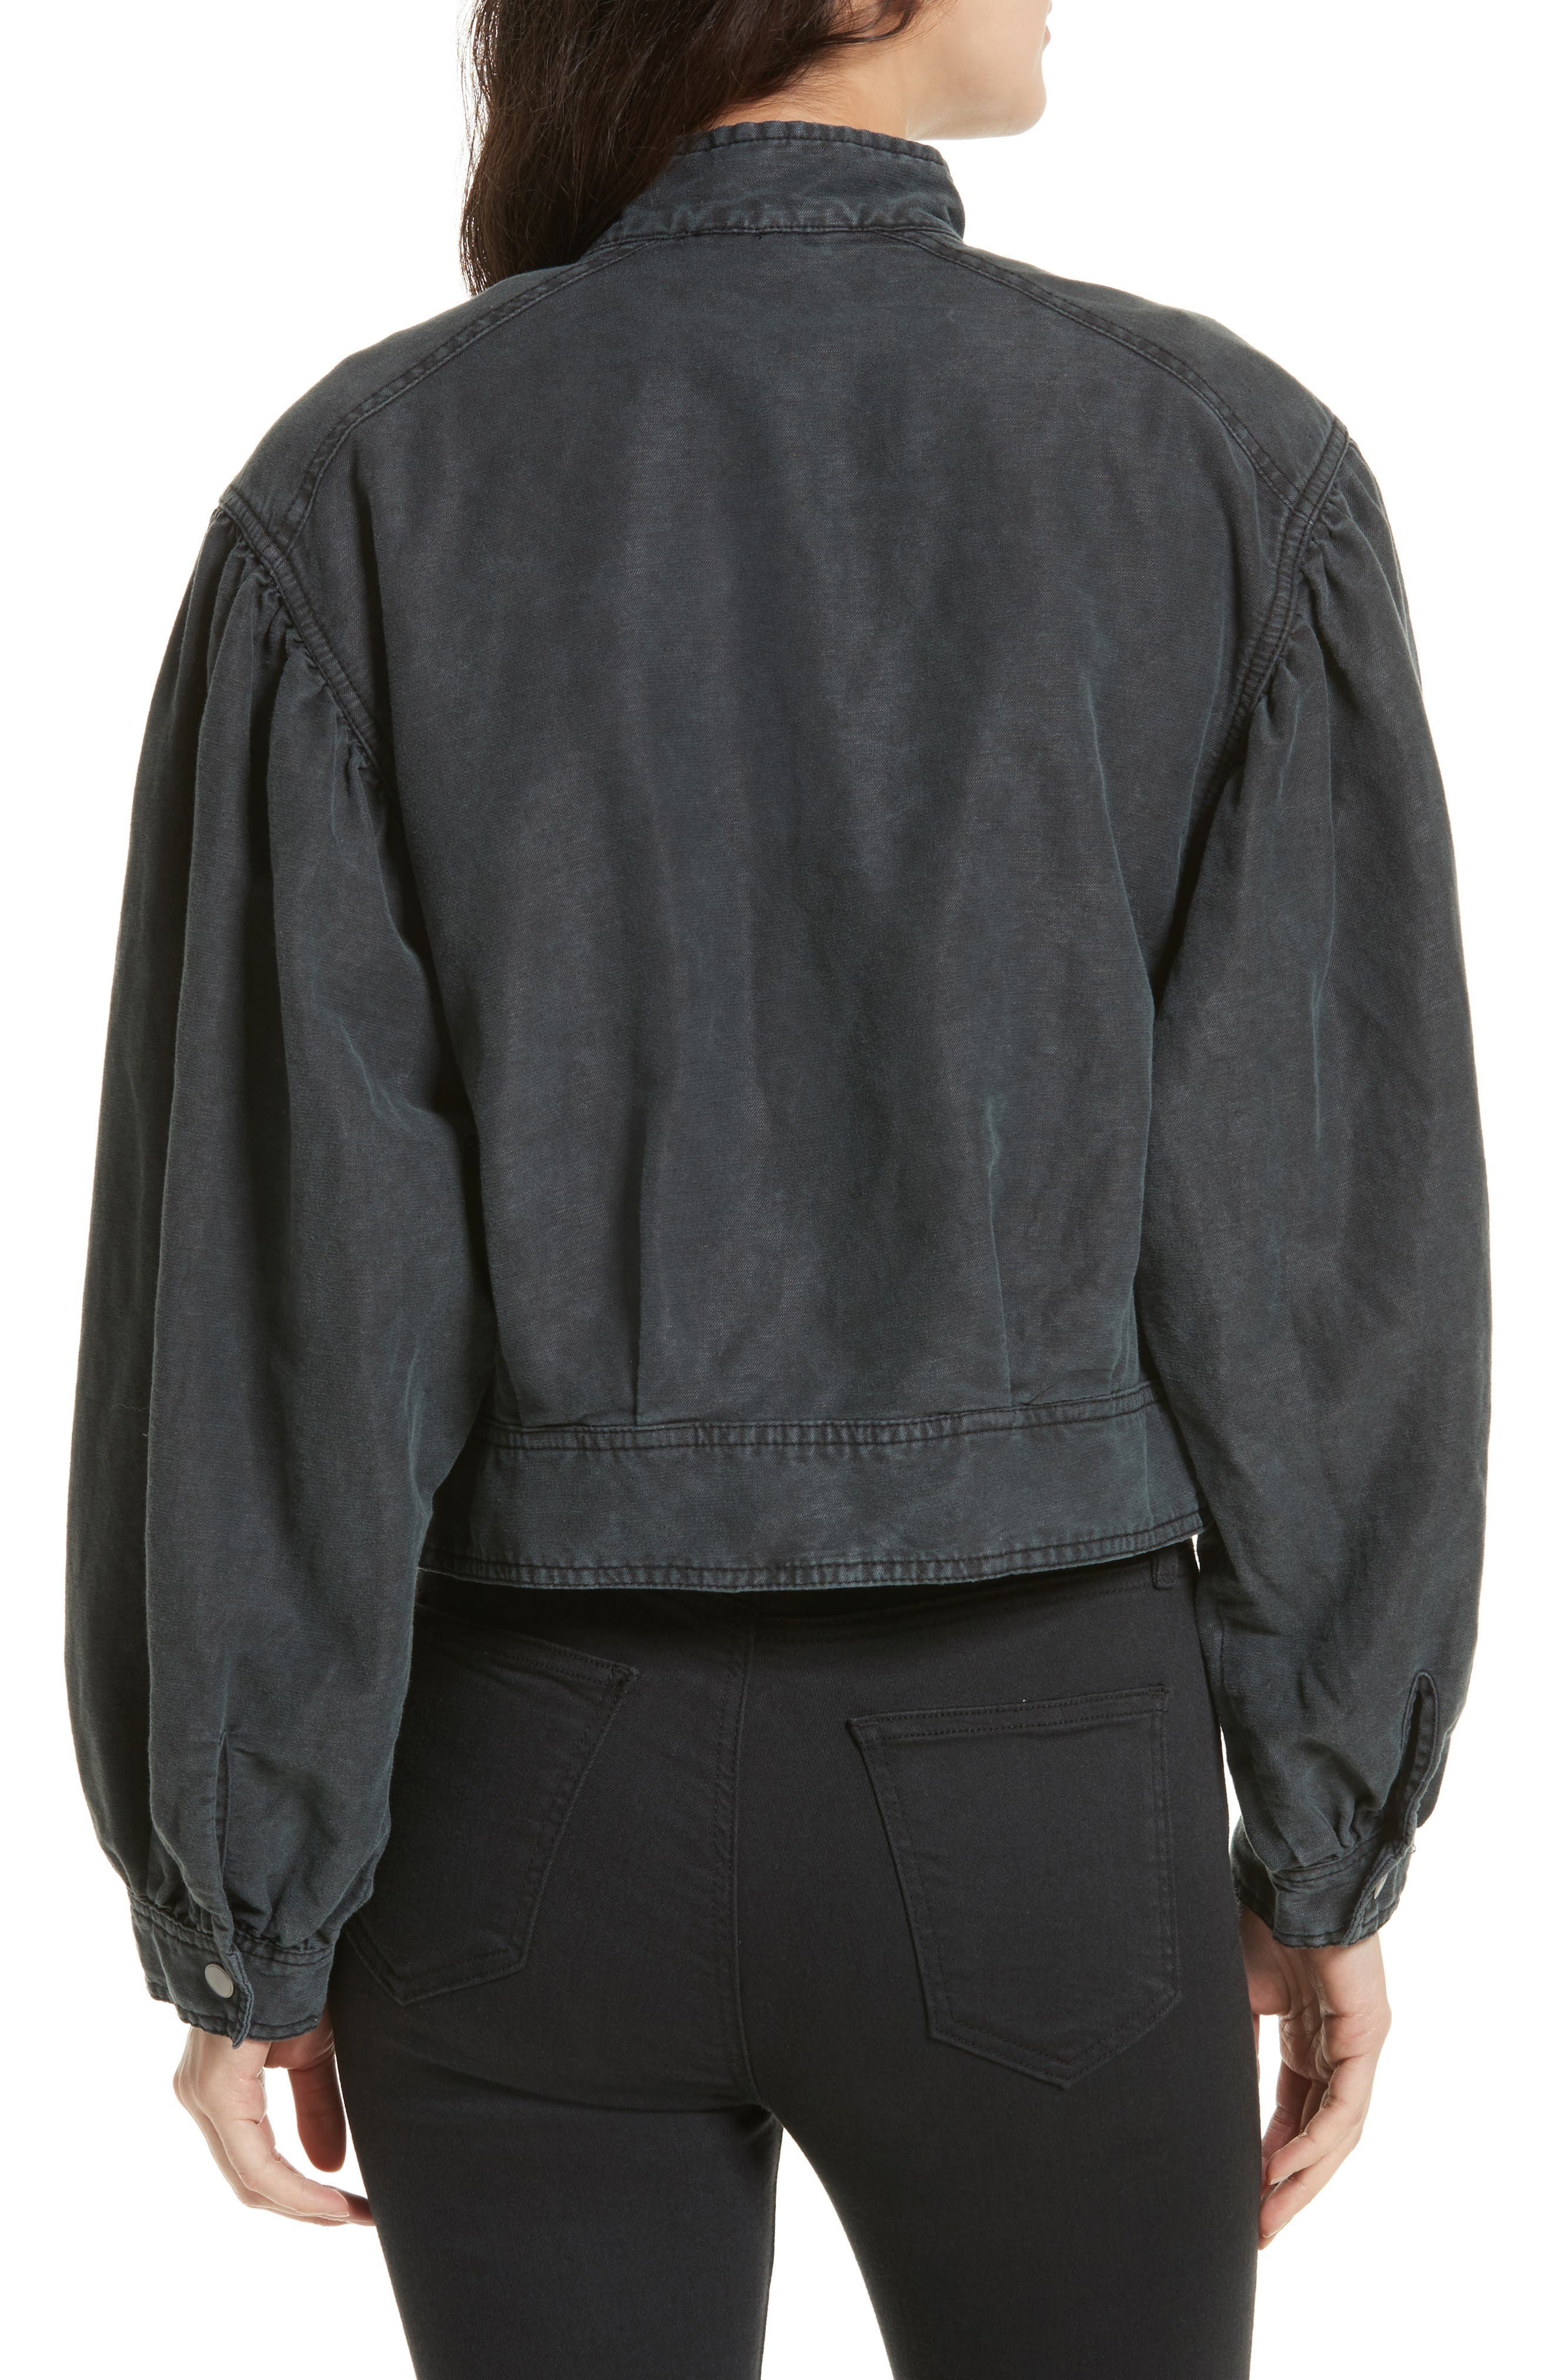 Poet Jacket,                             Alternate thumbnail 3, color,                             Black